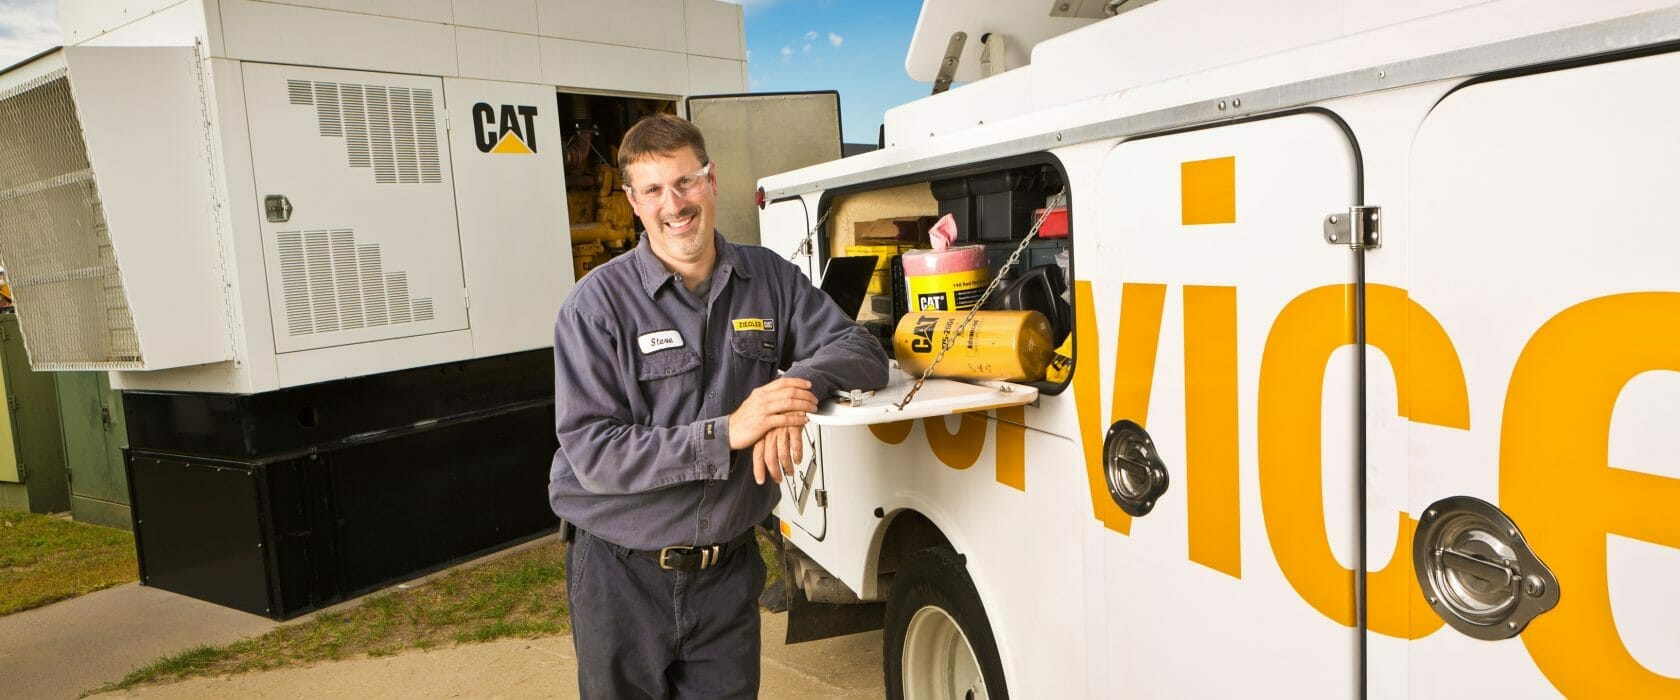 Power systems service